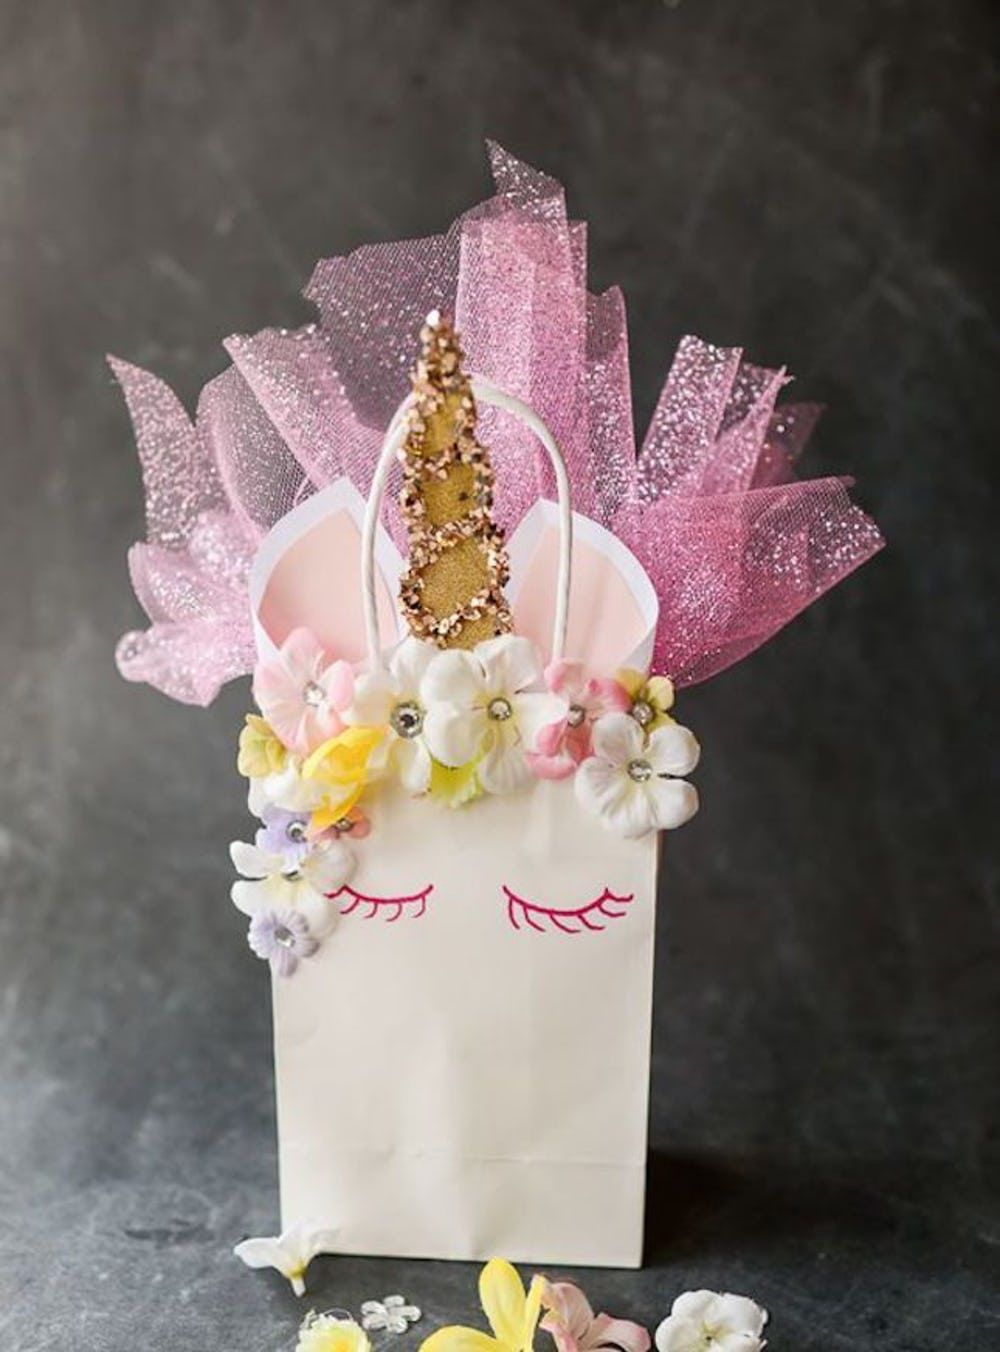 21 Party Ideas For A Unicorn Baby Shower Unicorn Gift Bags